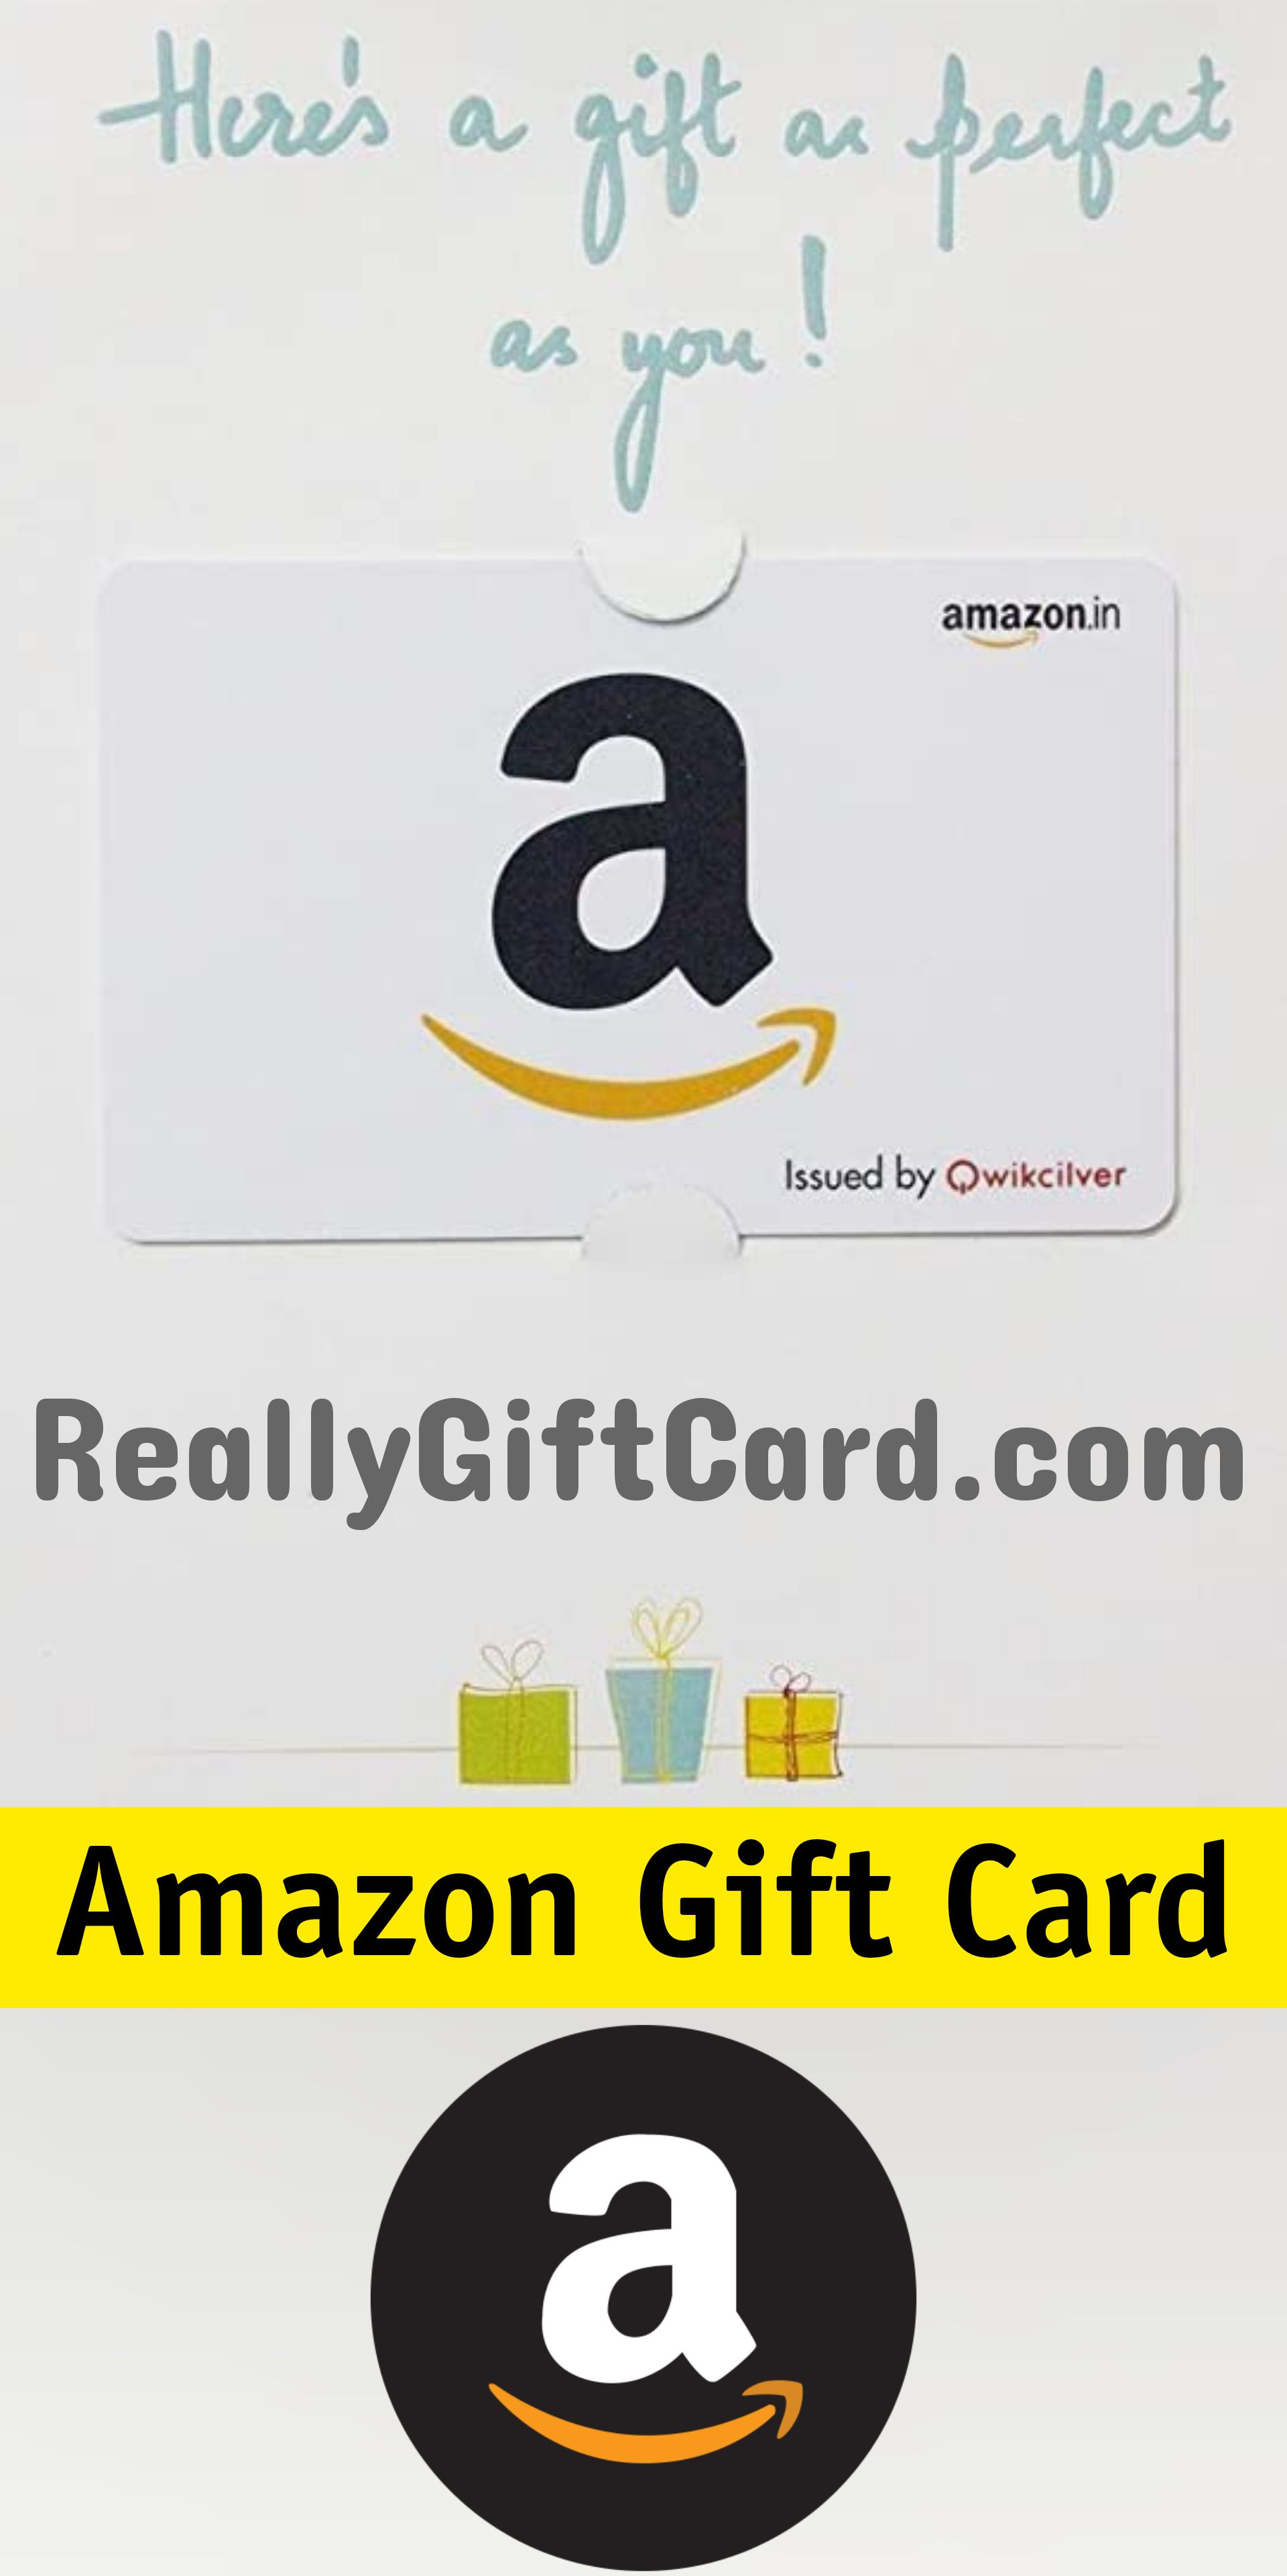 How To Get Unlimited 25 Amazon Gift Cards Amazon Gift Card Free Amazon Gifts Amazon Gift Cards